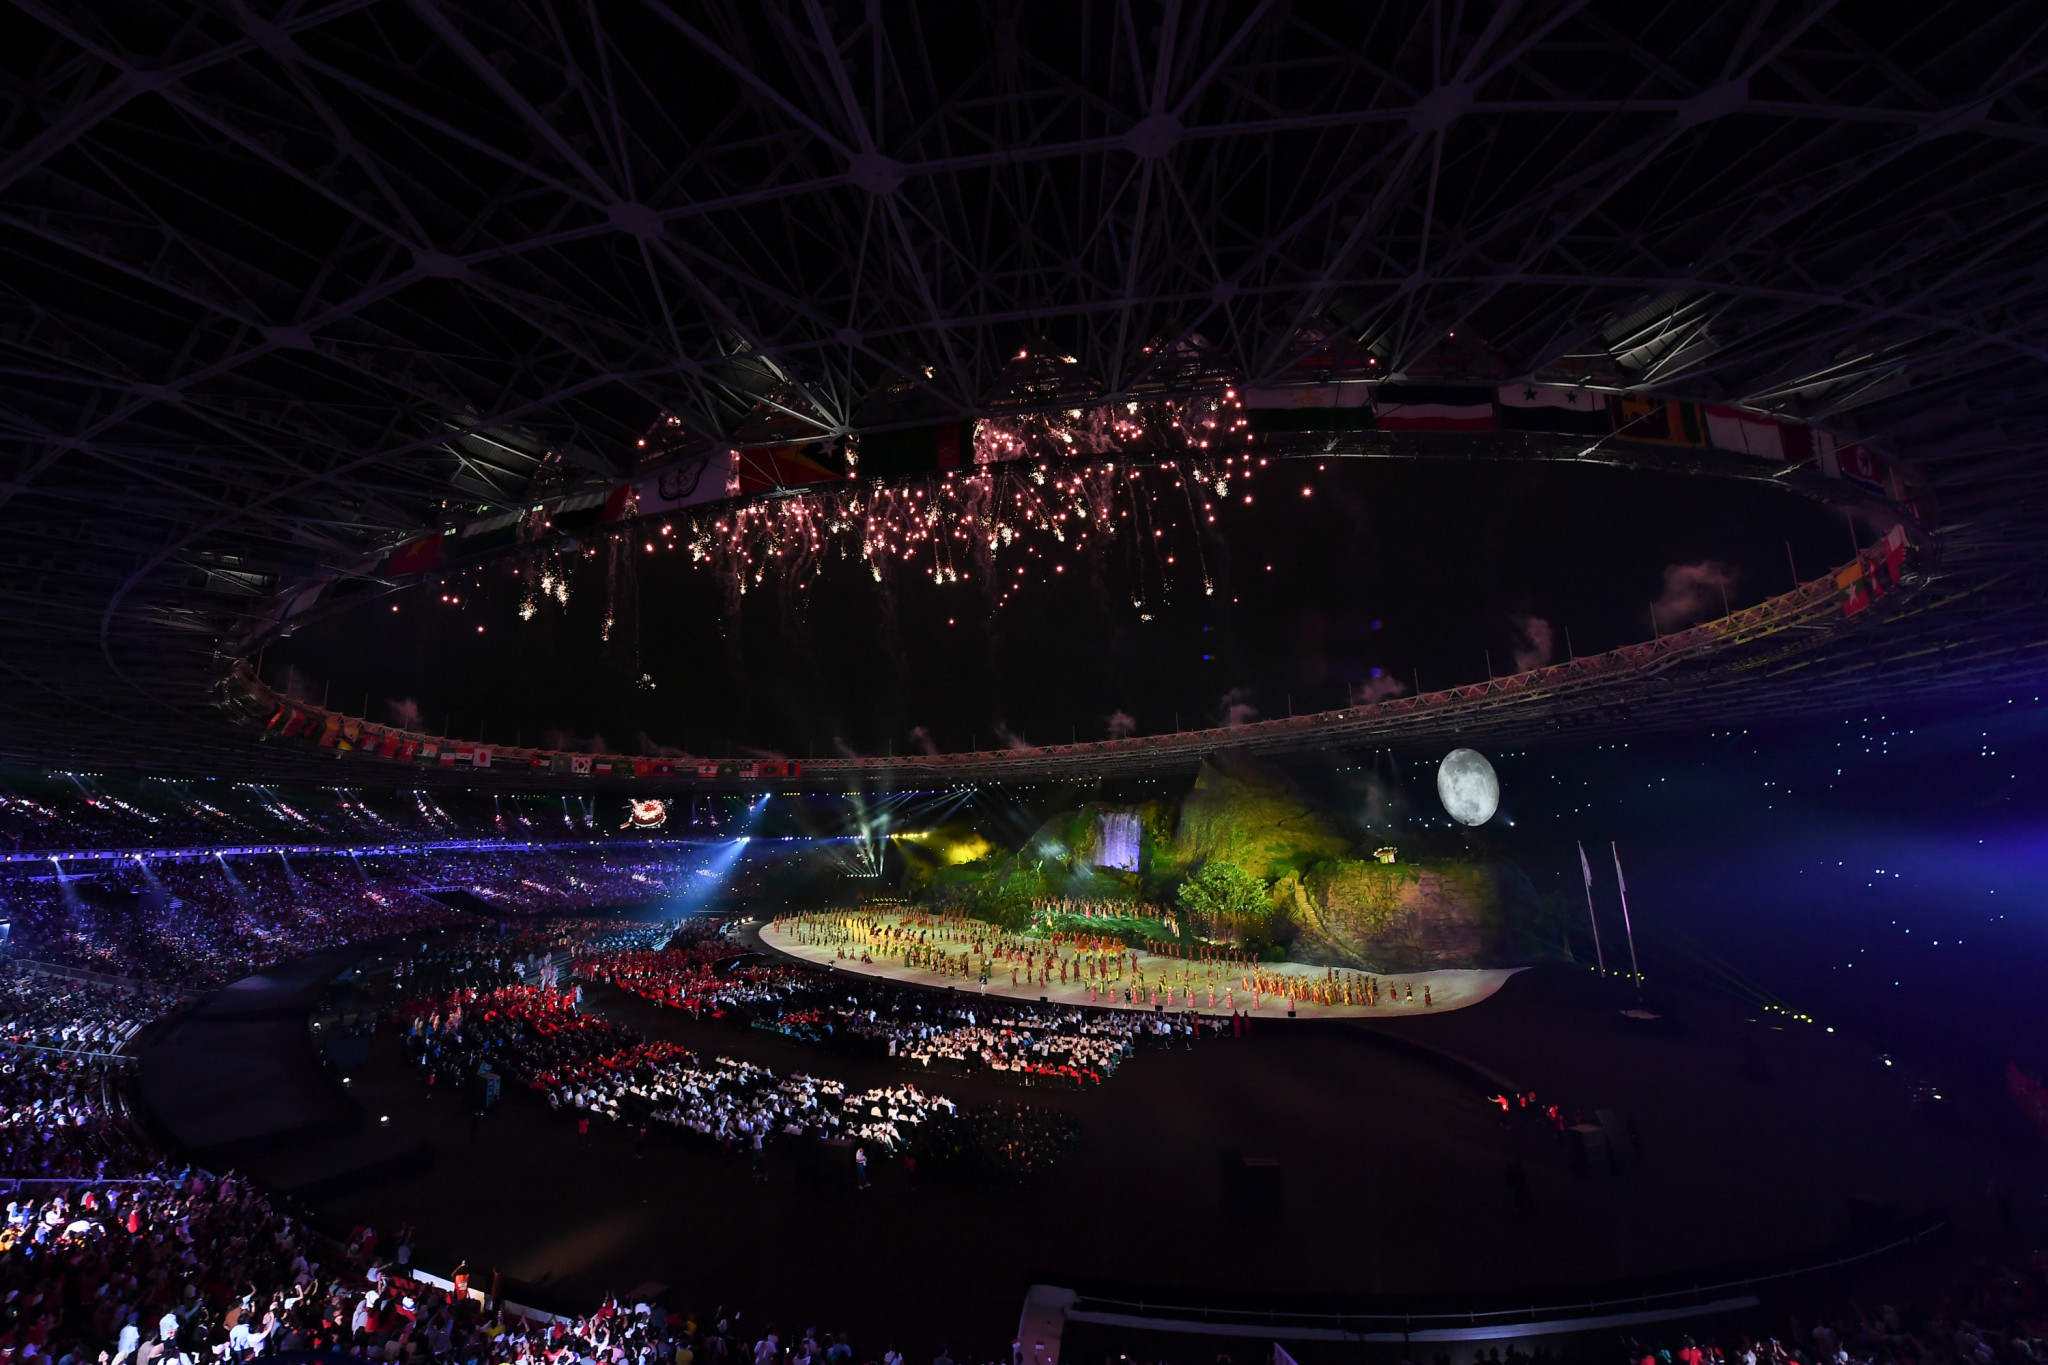 Indonesia staged the Asian Games in 2018 and hopes to host the 2036 Olympics and Paralympics, but the WADA sanctions prevent it from being awarded major events for a minimum of a year and not until the non-compliance declaration is lifted ©Getty Images